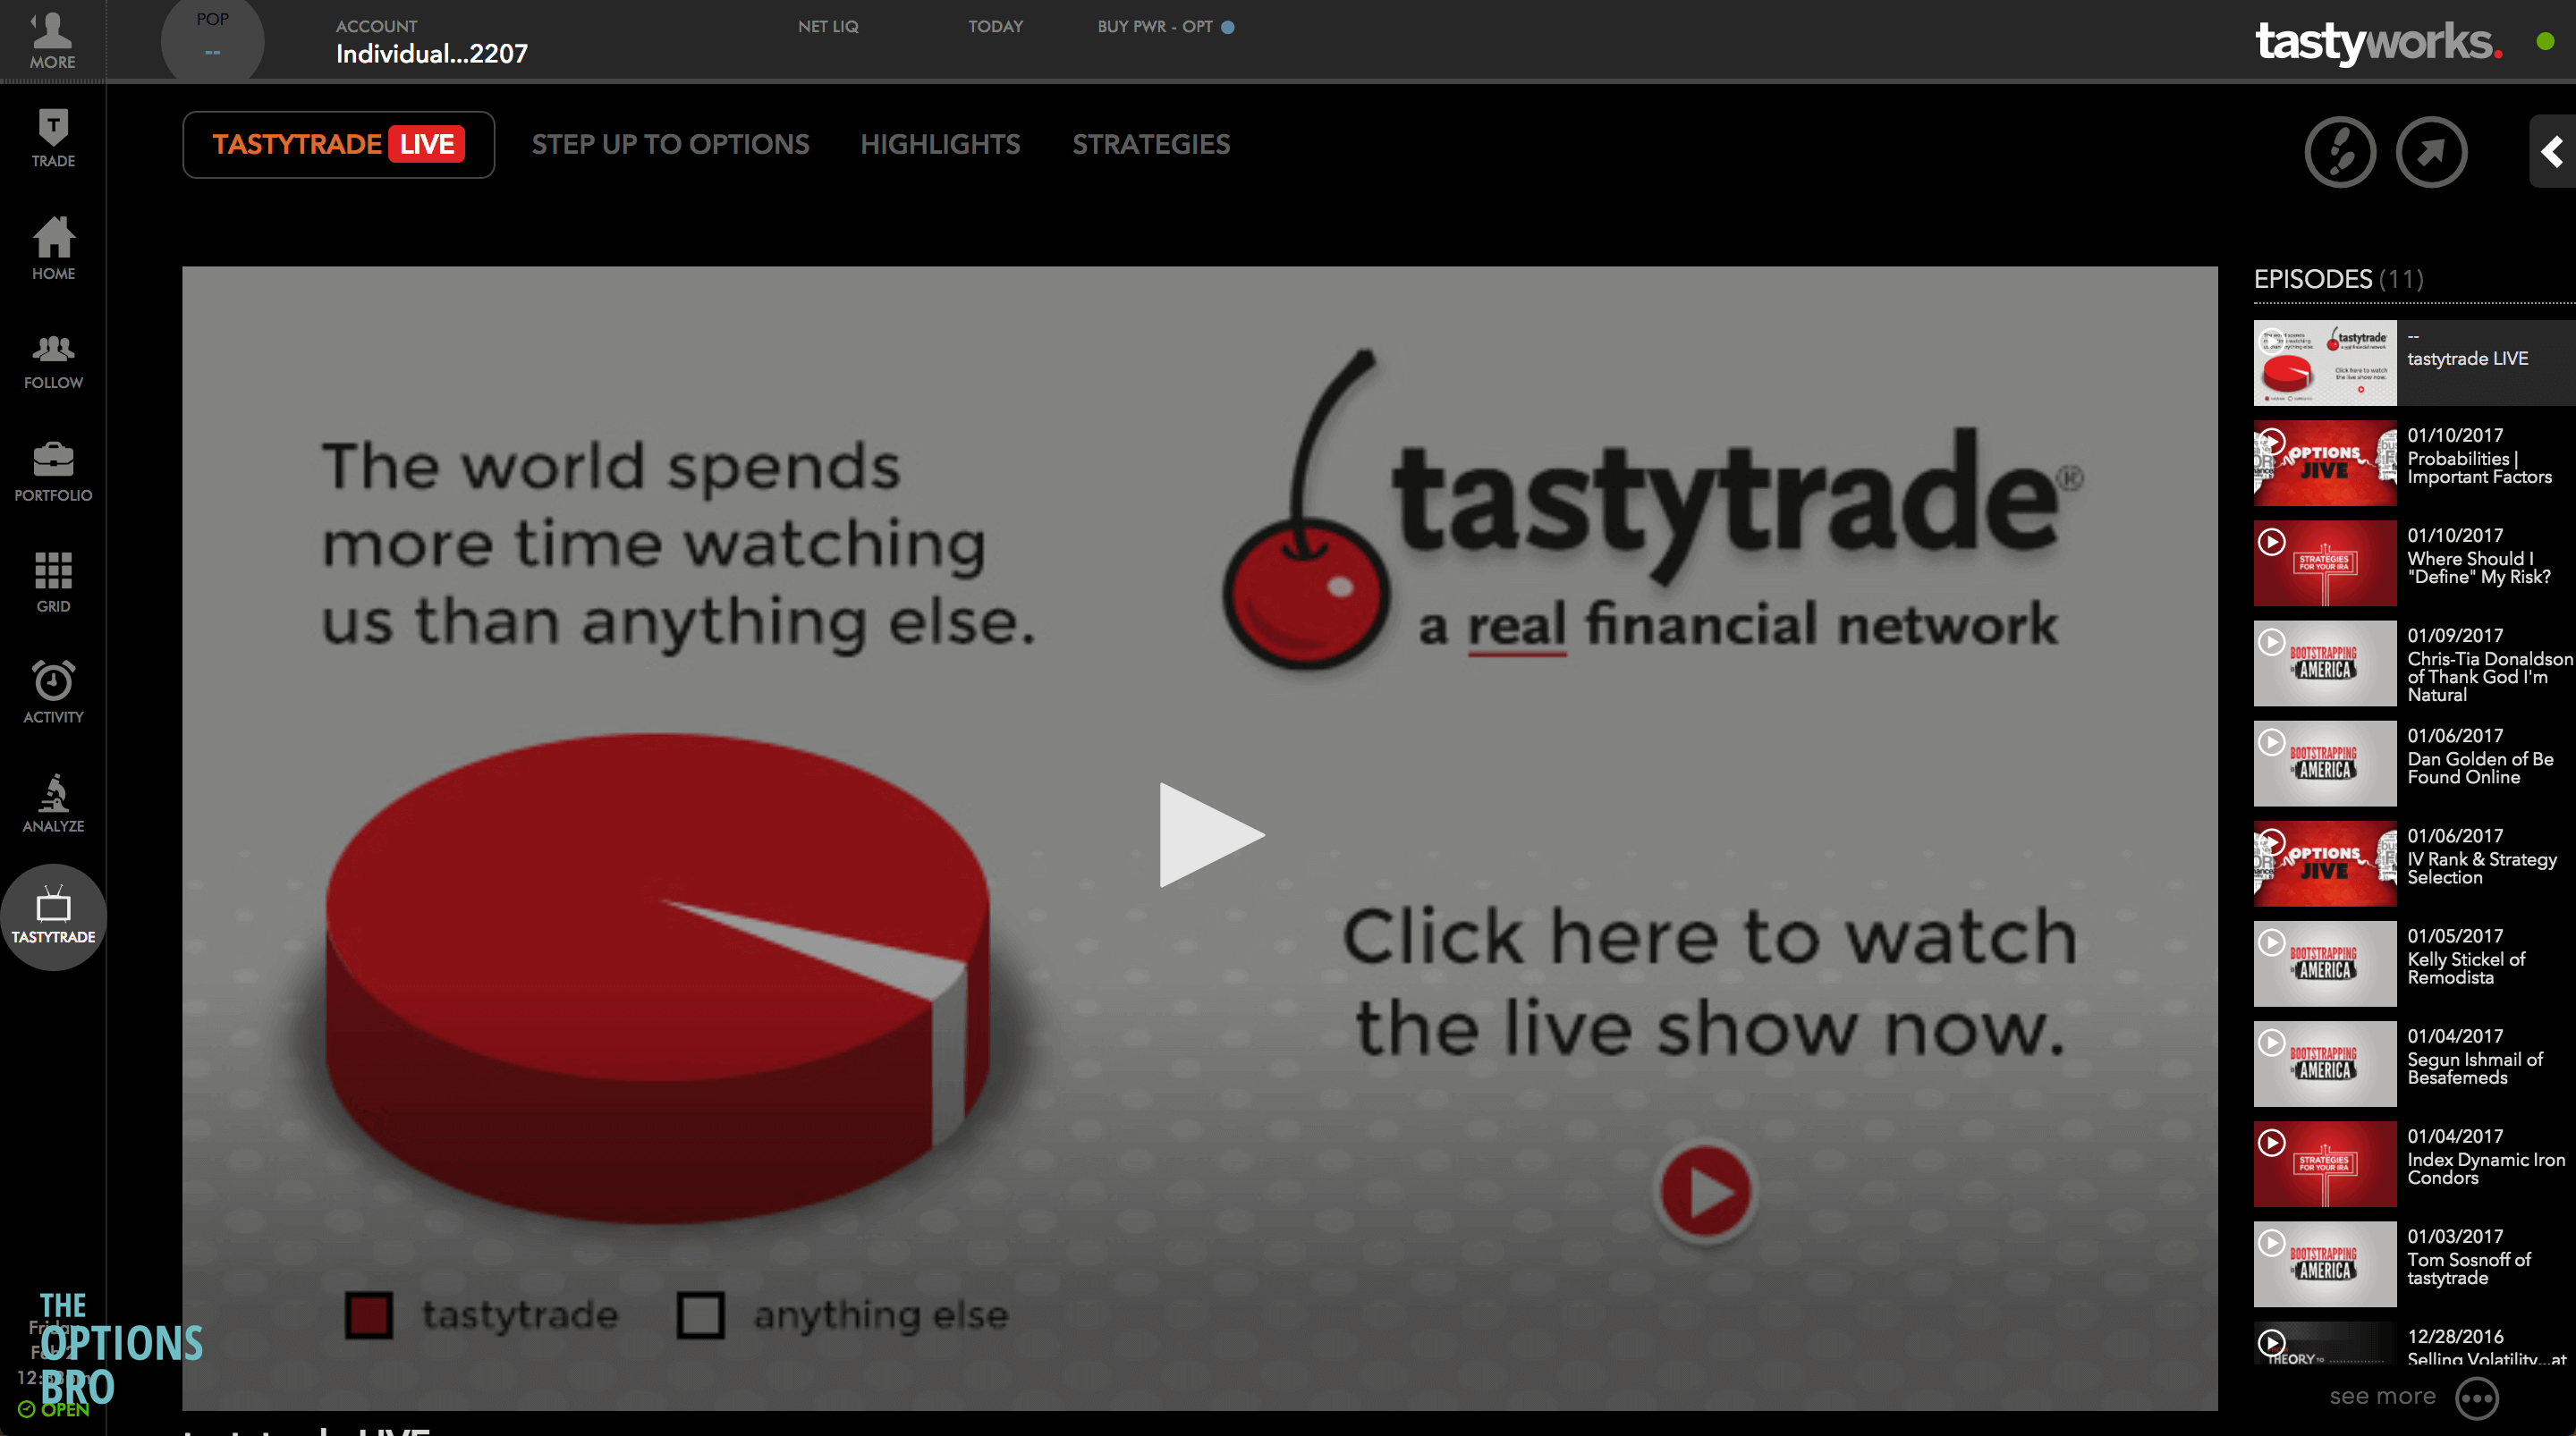 Tastyworks tastytrade media